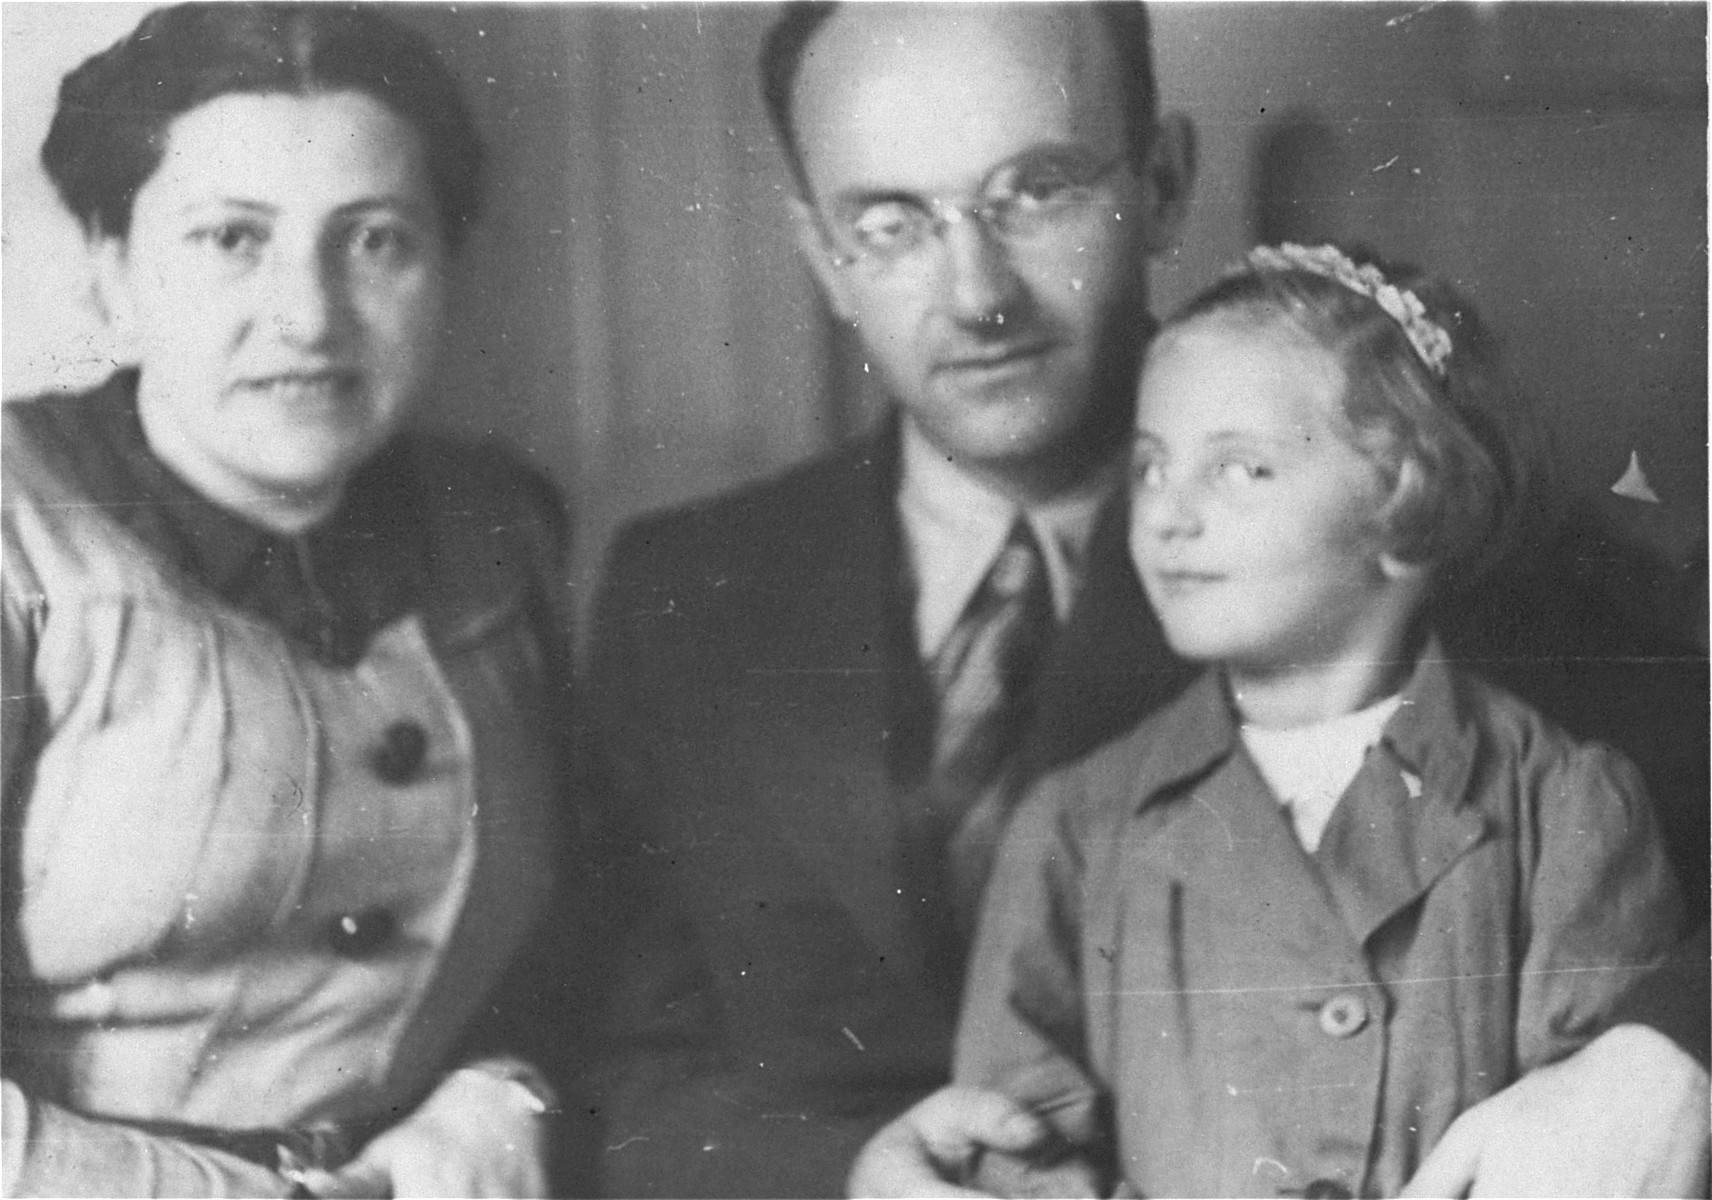 Portrait of the reunited Fischbein family after the war.